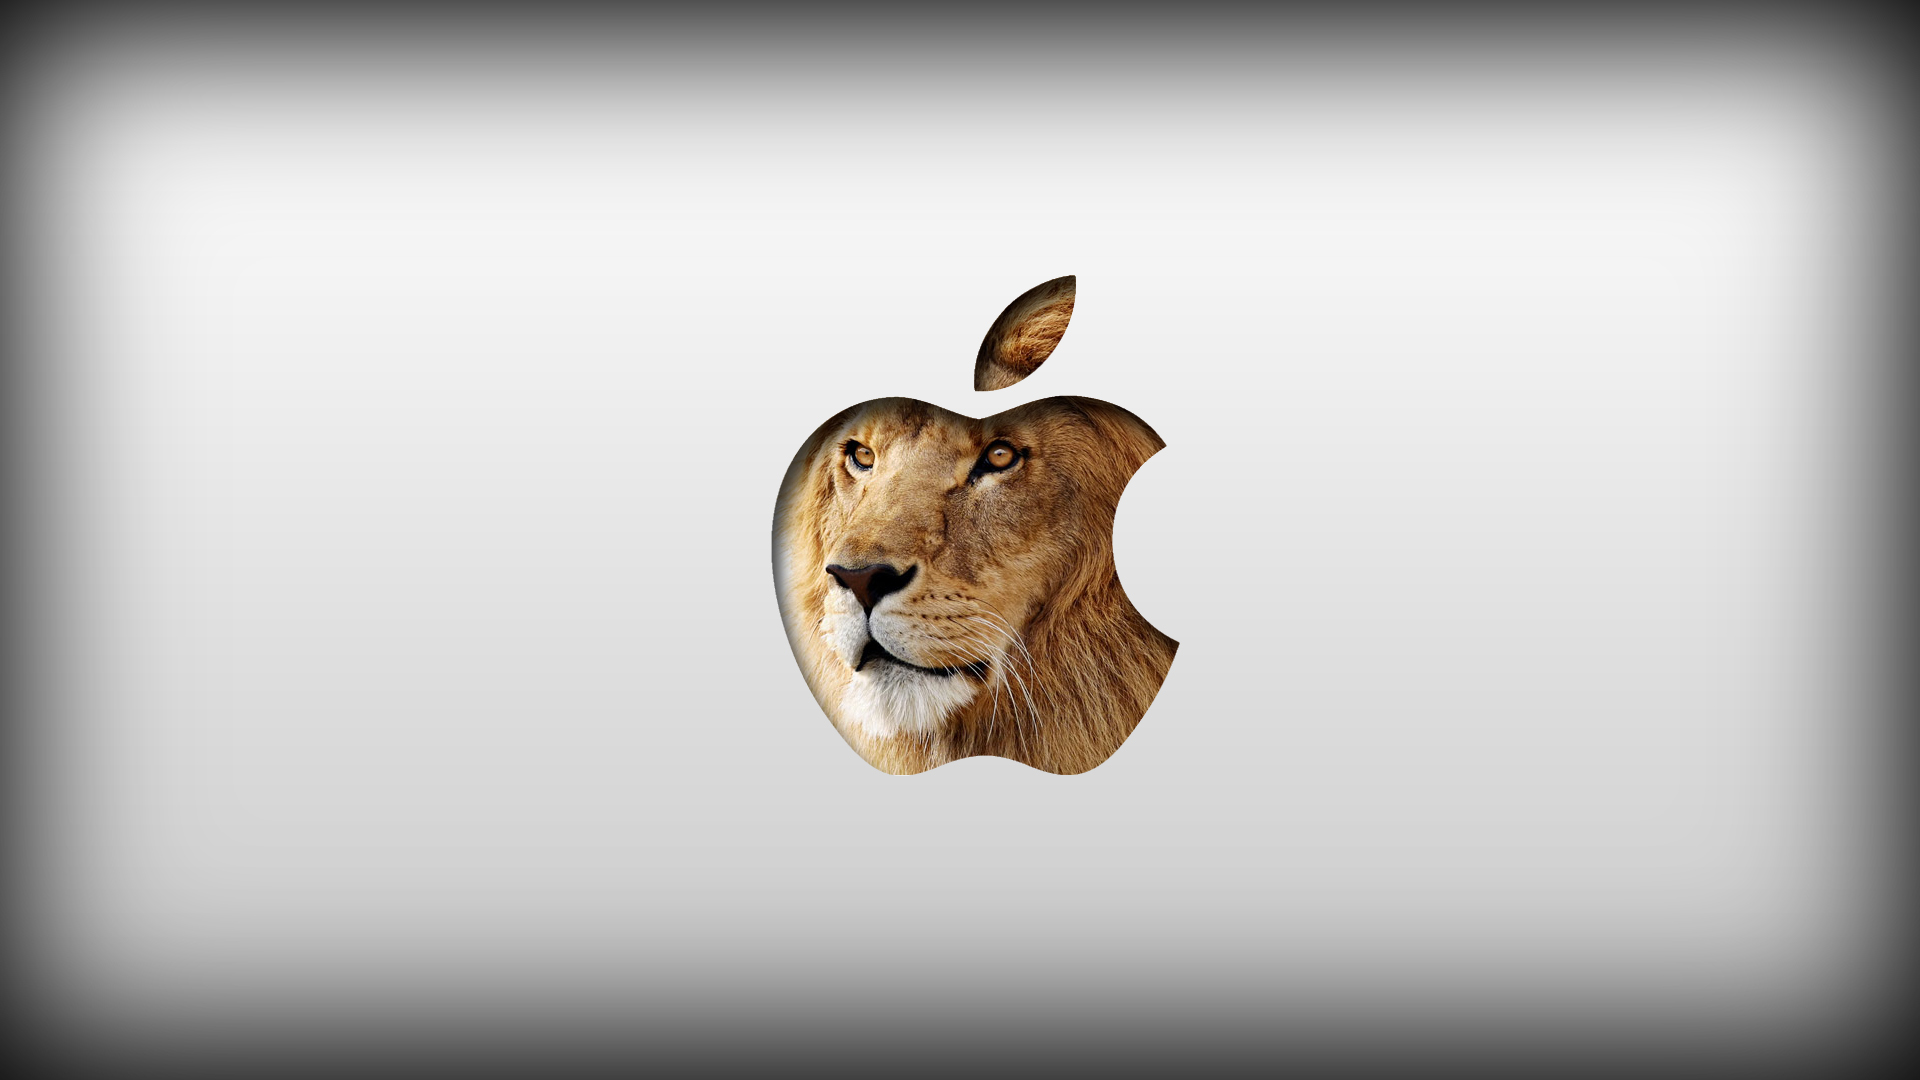 Mac Os X Wallpaper Mountain Lion Space Wallpapers In Toplist 1920x1080